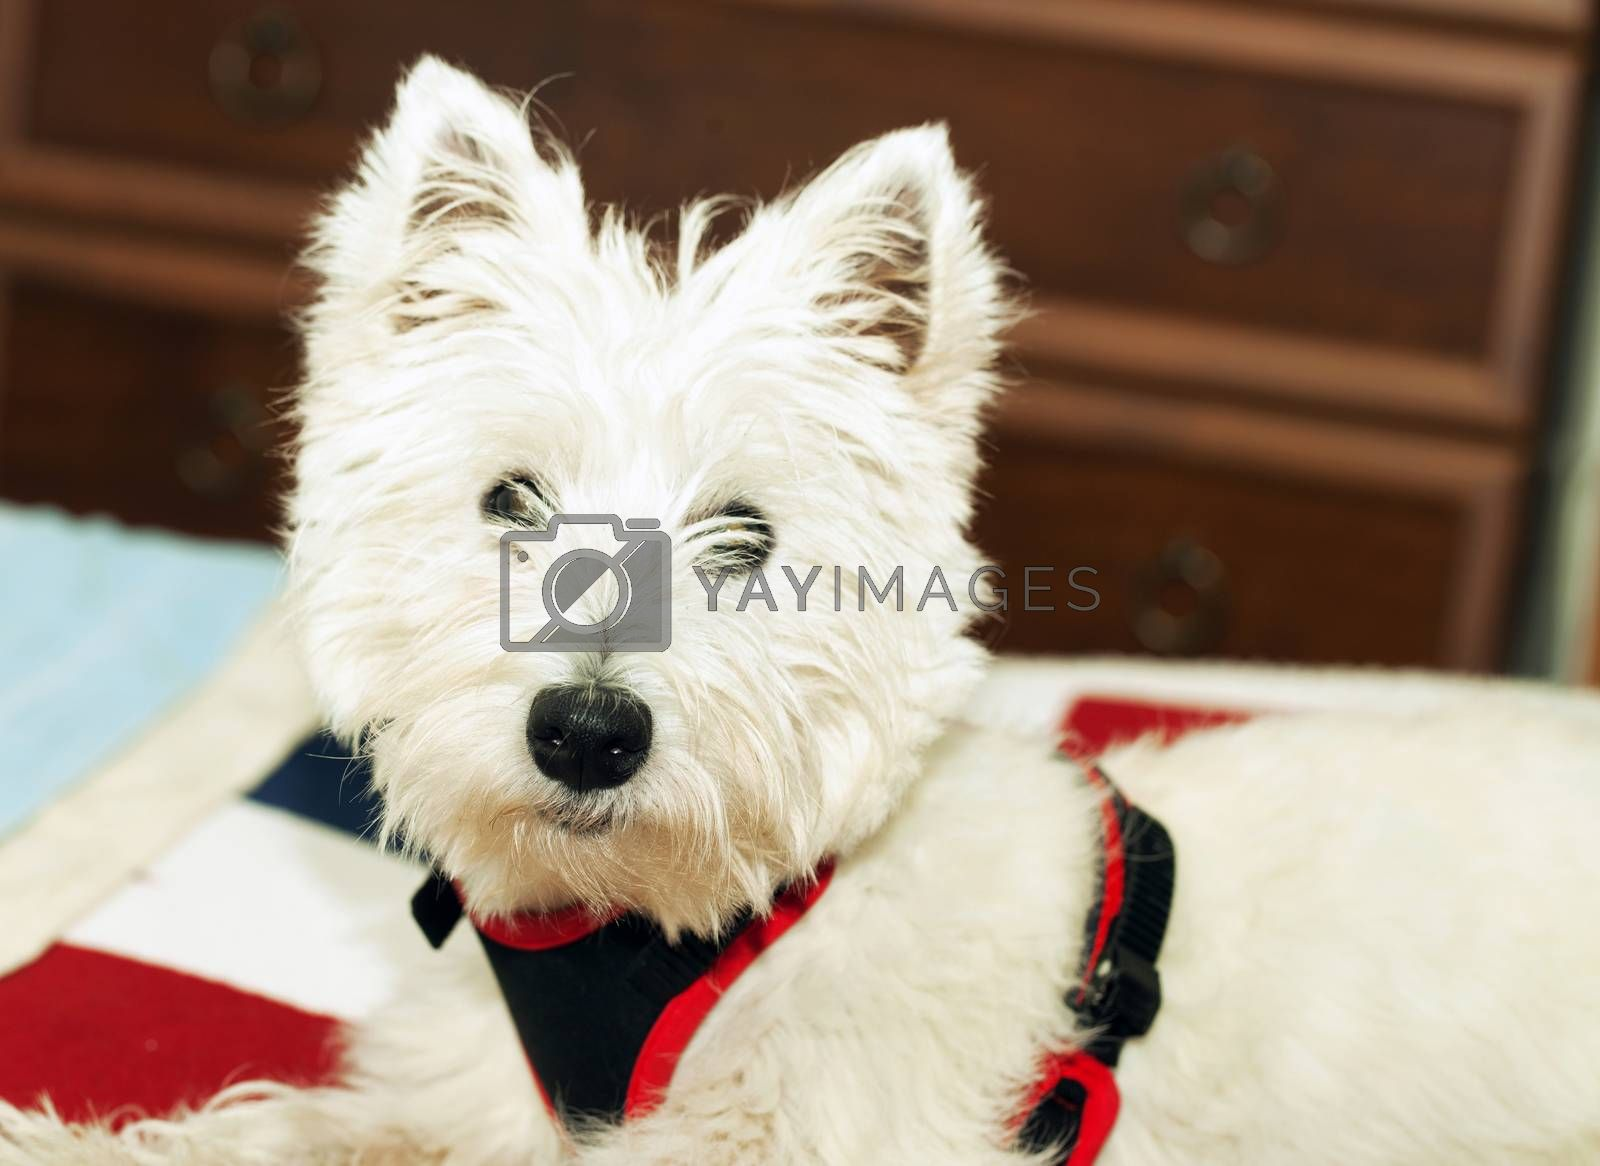 West Highlands terrier in portrait, horizontal image